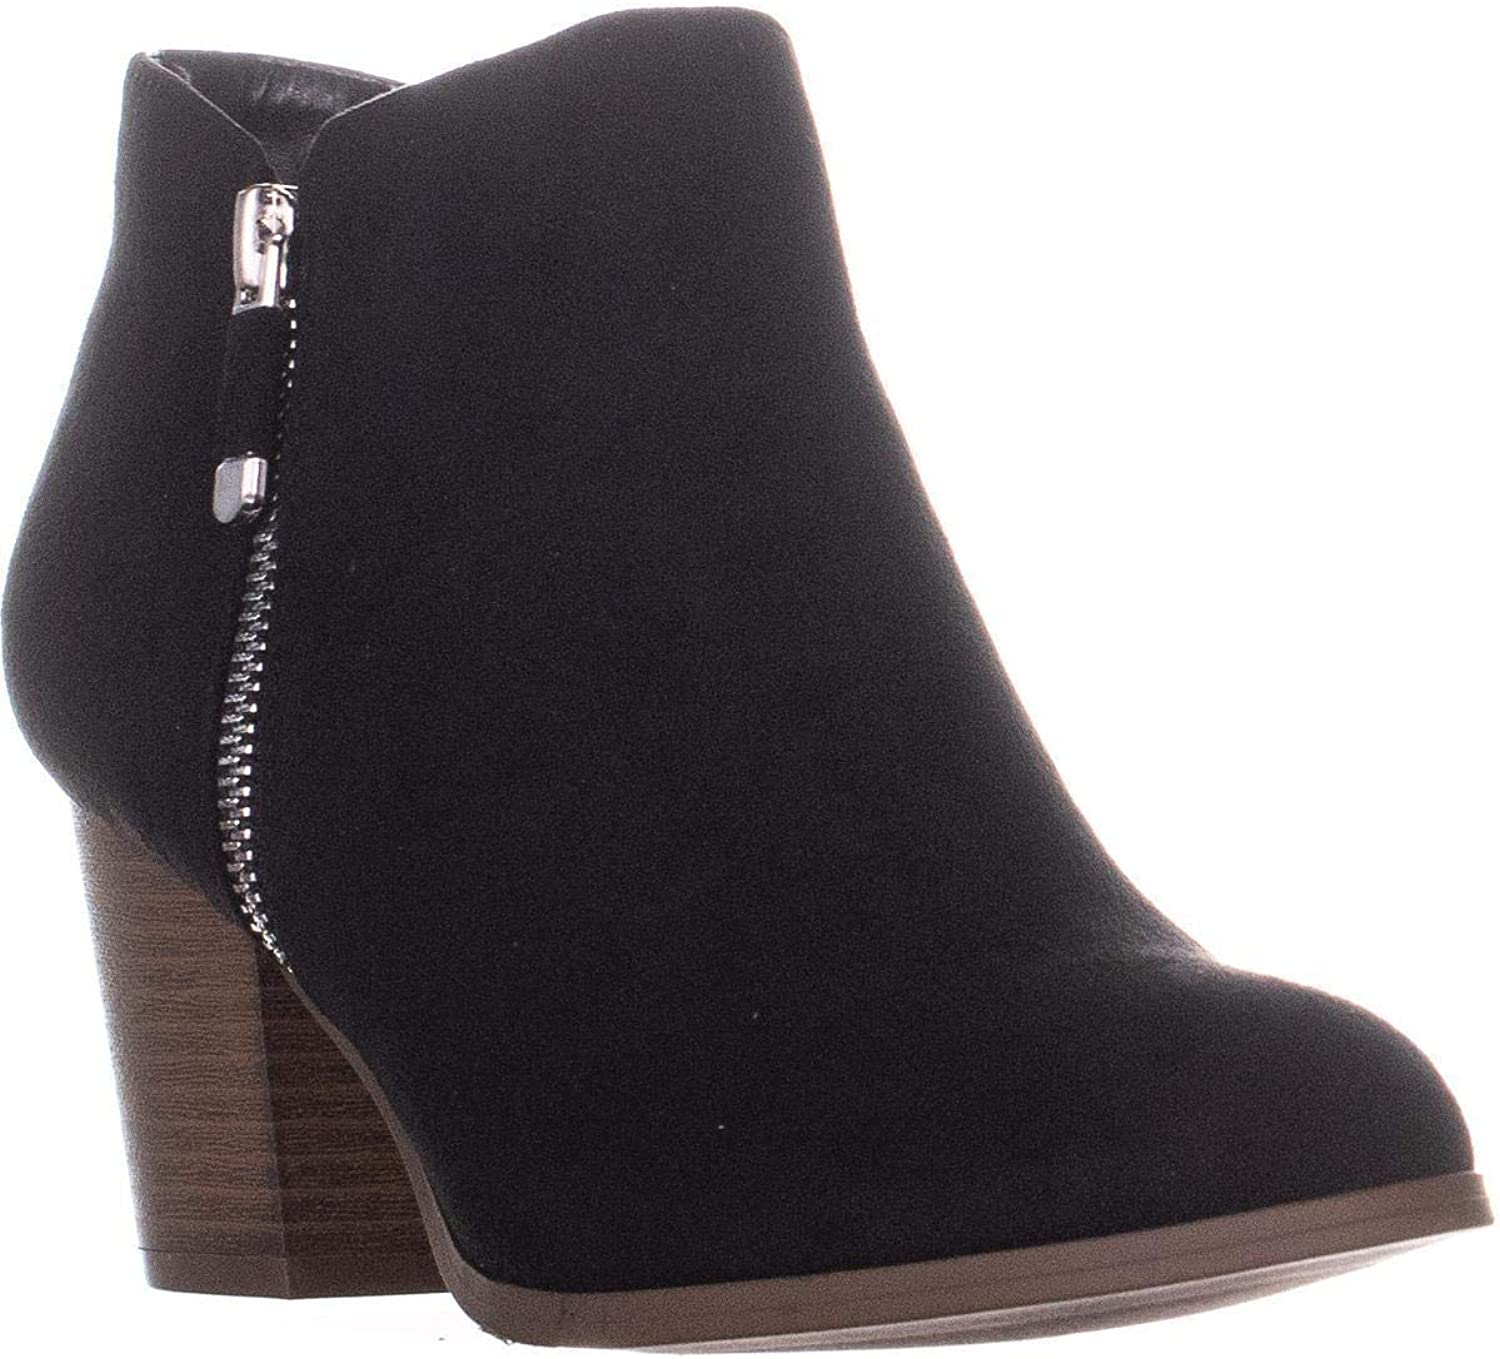 SC35 Masrinaa Ankle Booties, Black Suede